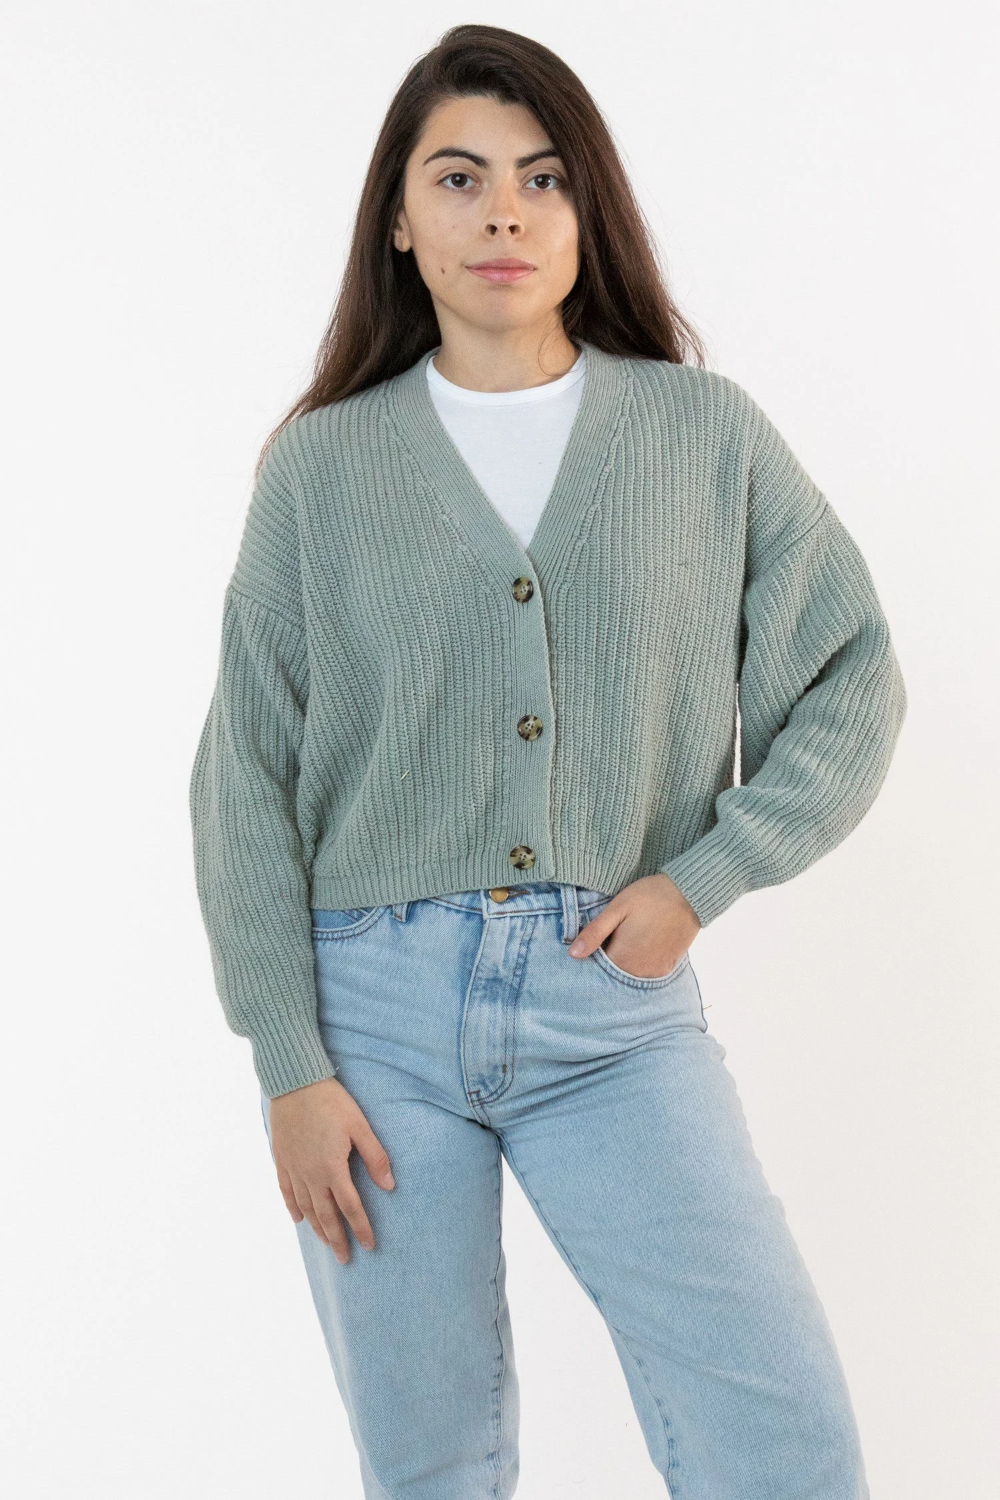 Fm35gd Fisherman Cropped Cardigan In 2020 Cropped Cardigan Cropped Cardigan Outfit Cardigan